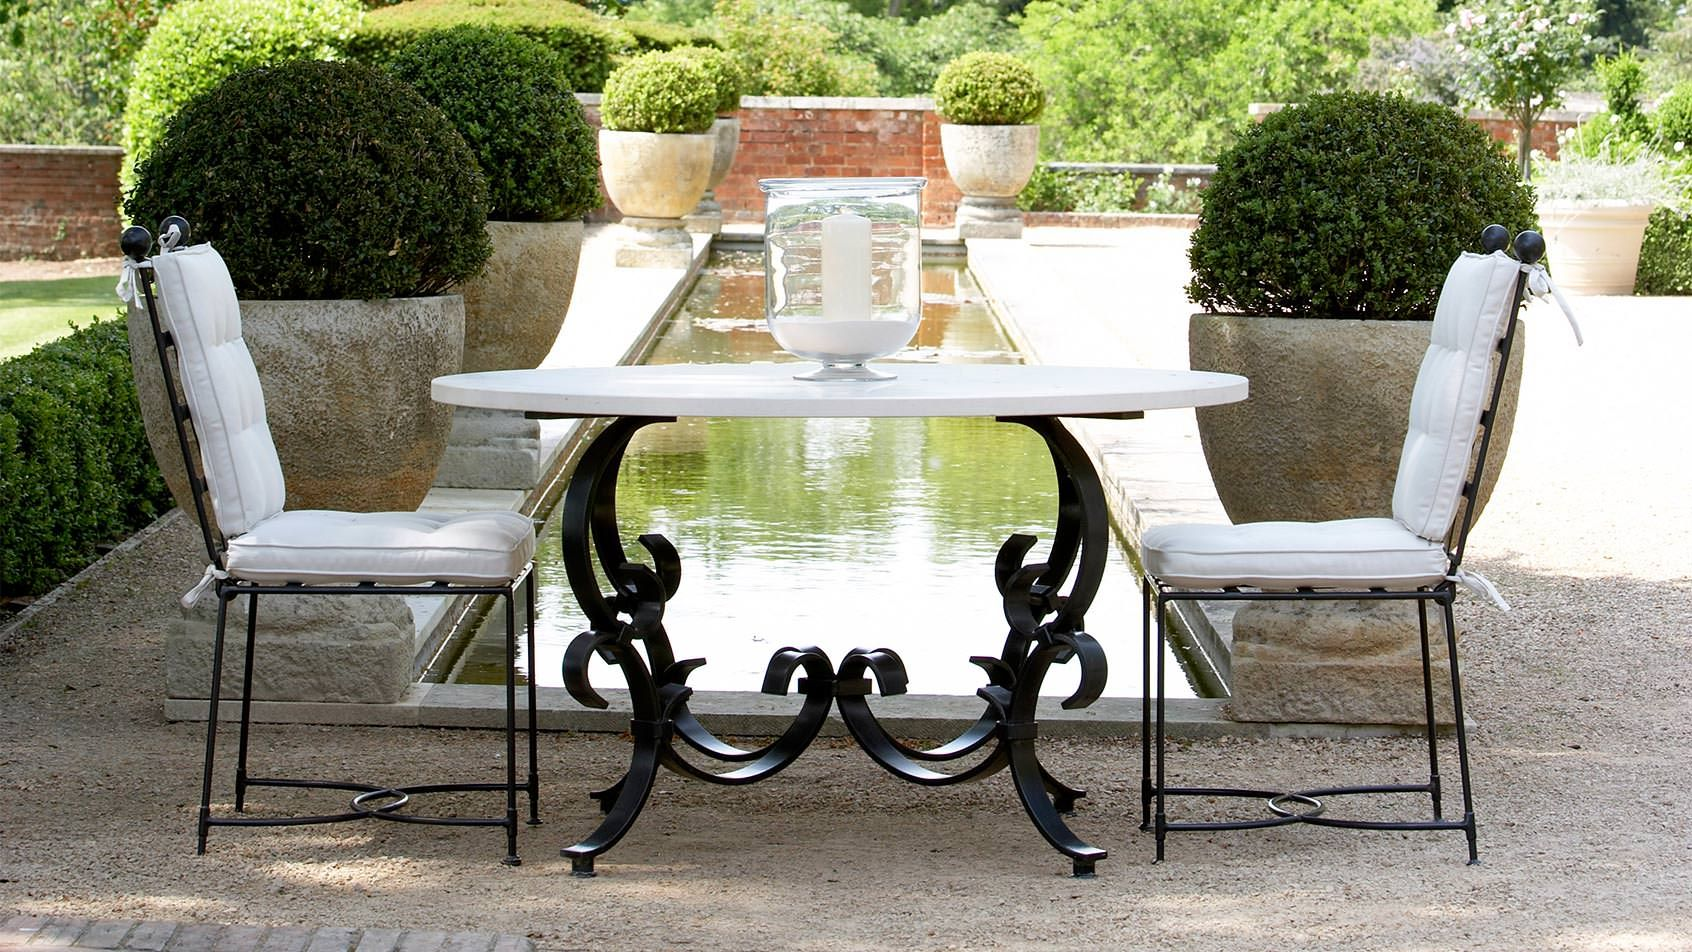 Norsebury Table u0026 Chairs Norsebury Table u0026